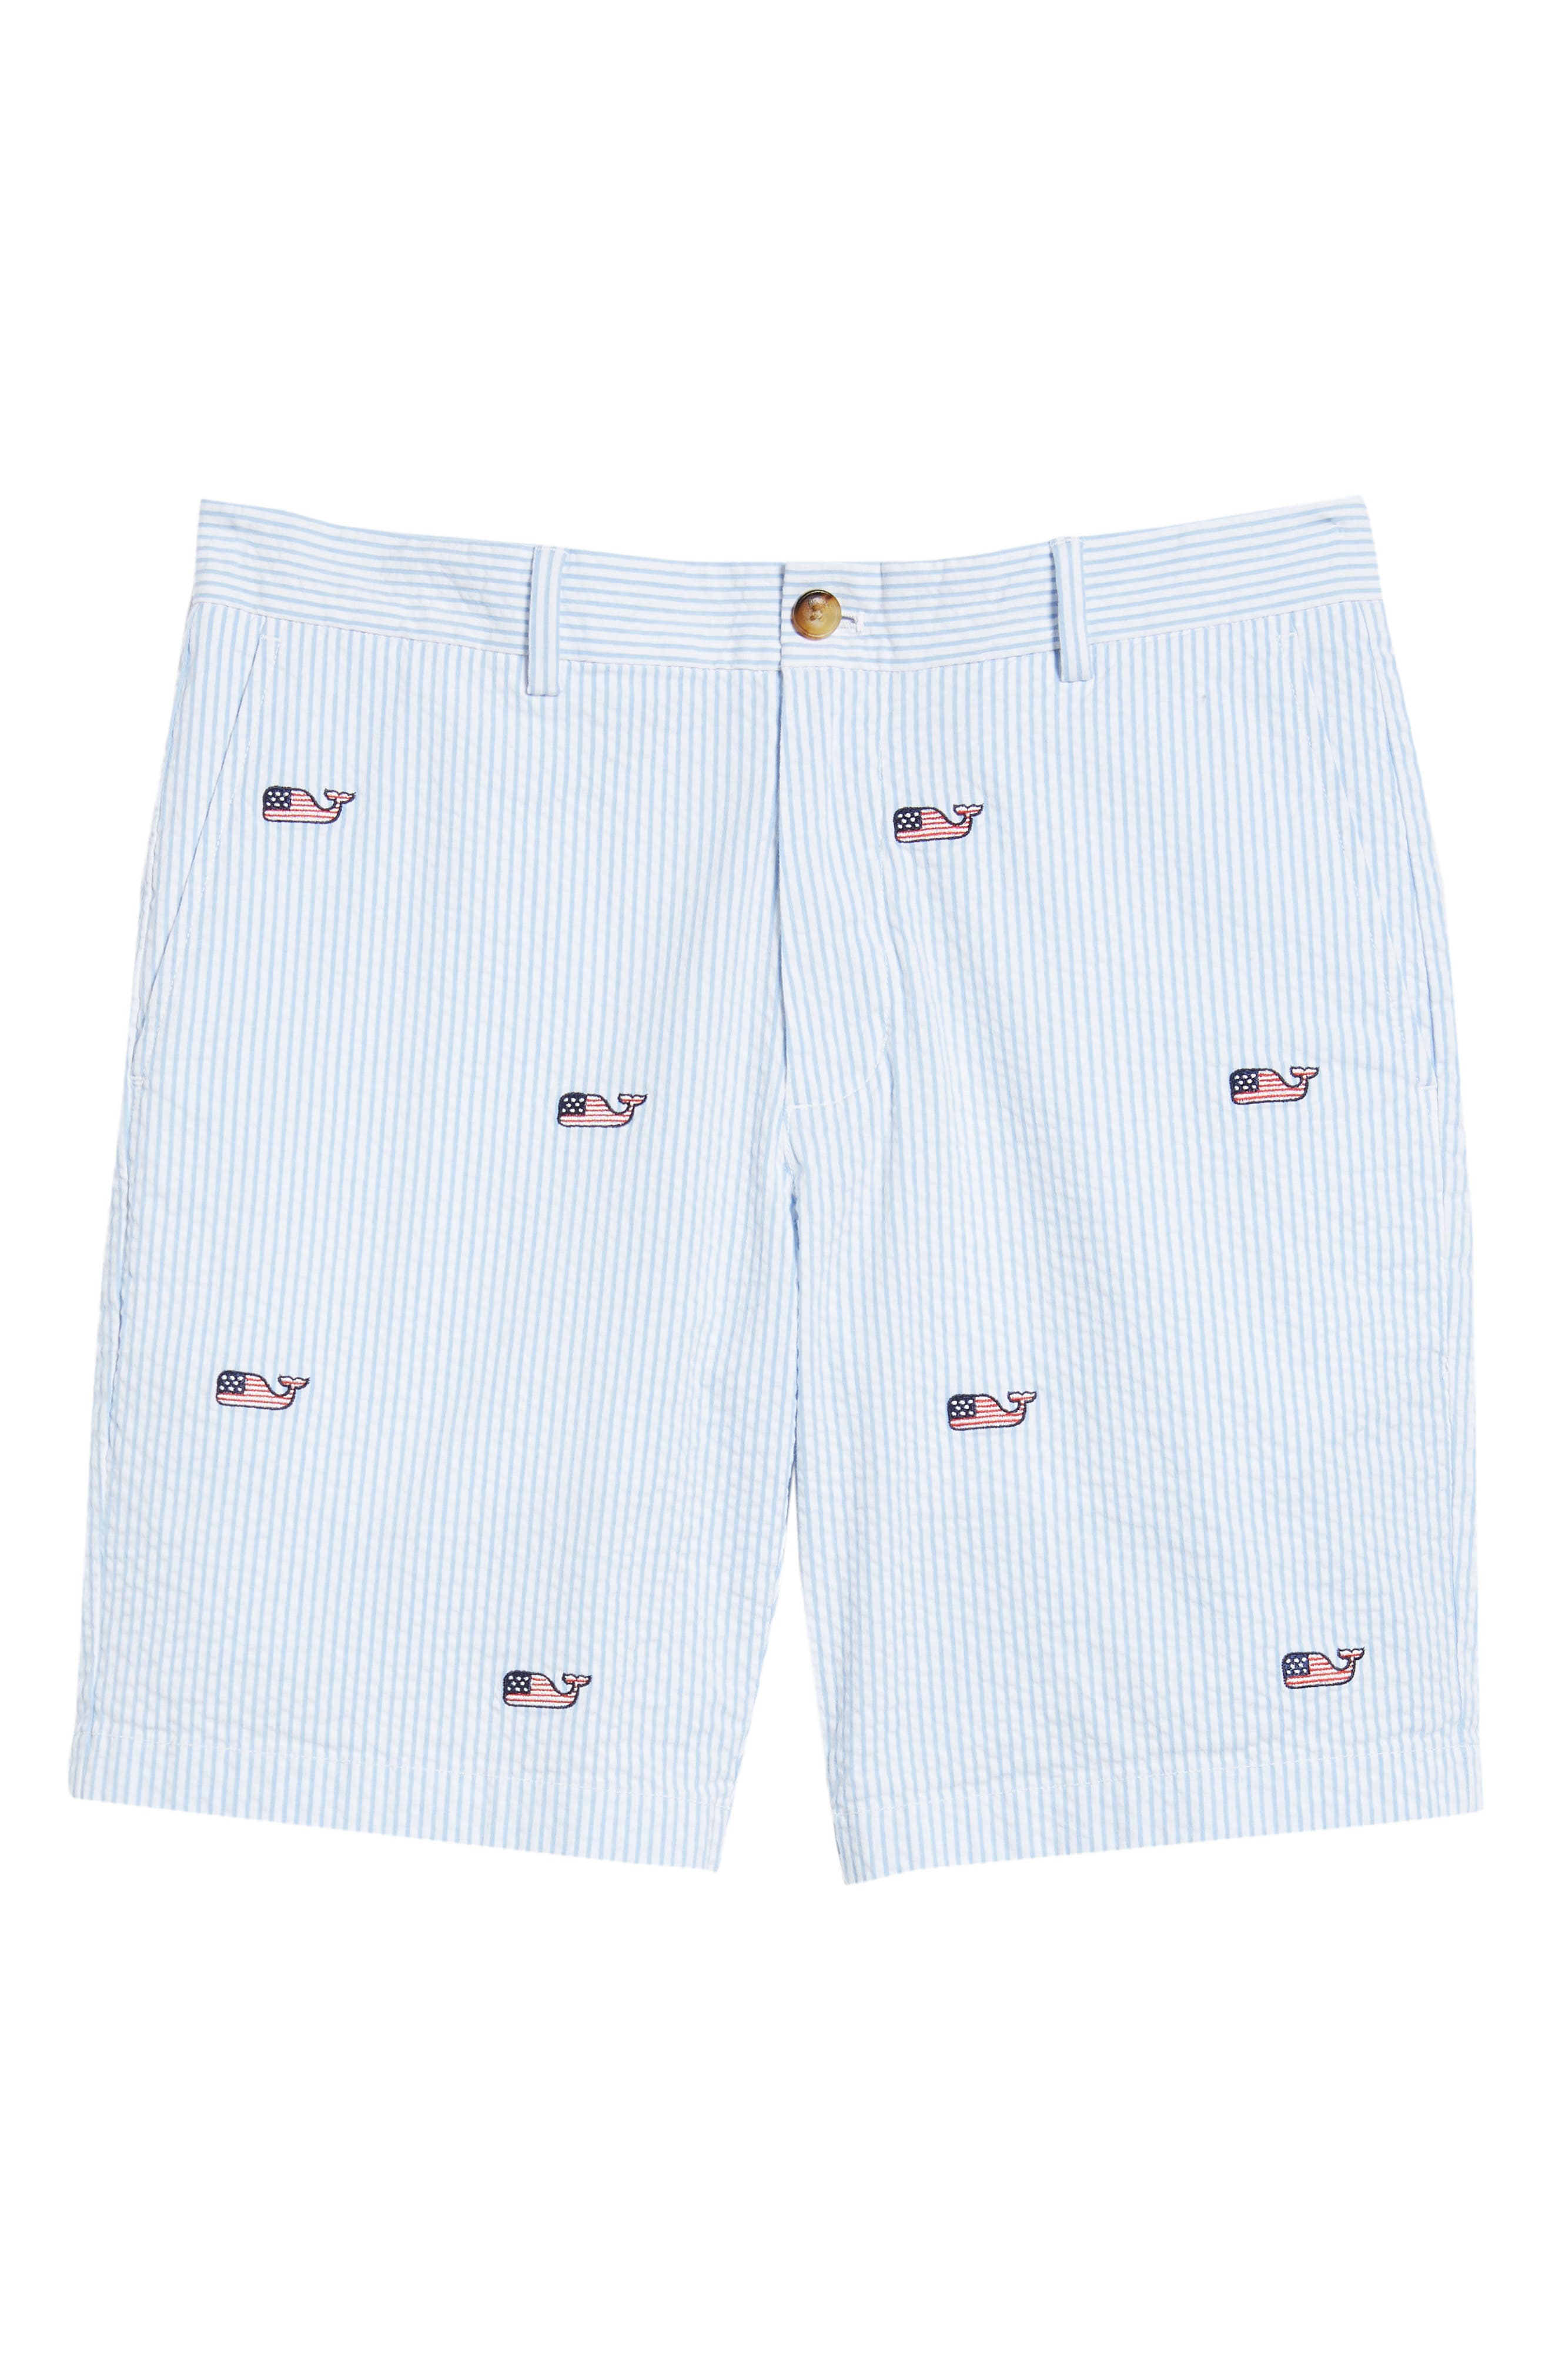 Seersucker Whale Shorts,                             Alternate thumbnail 6, color,                             Ocean Breeze